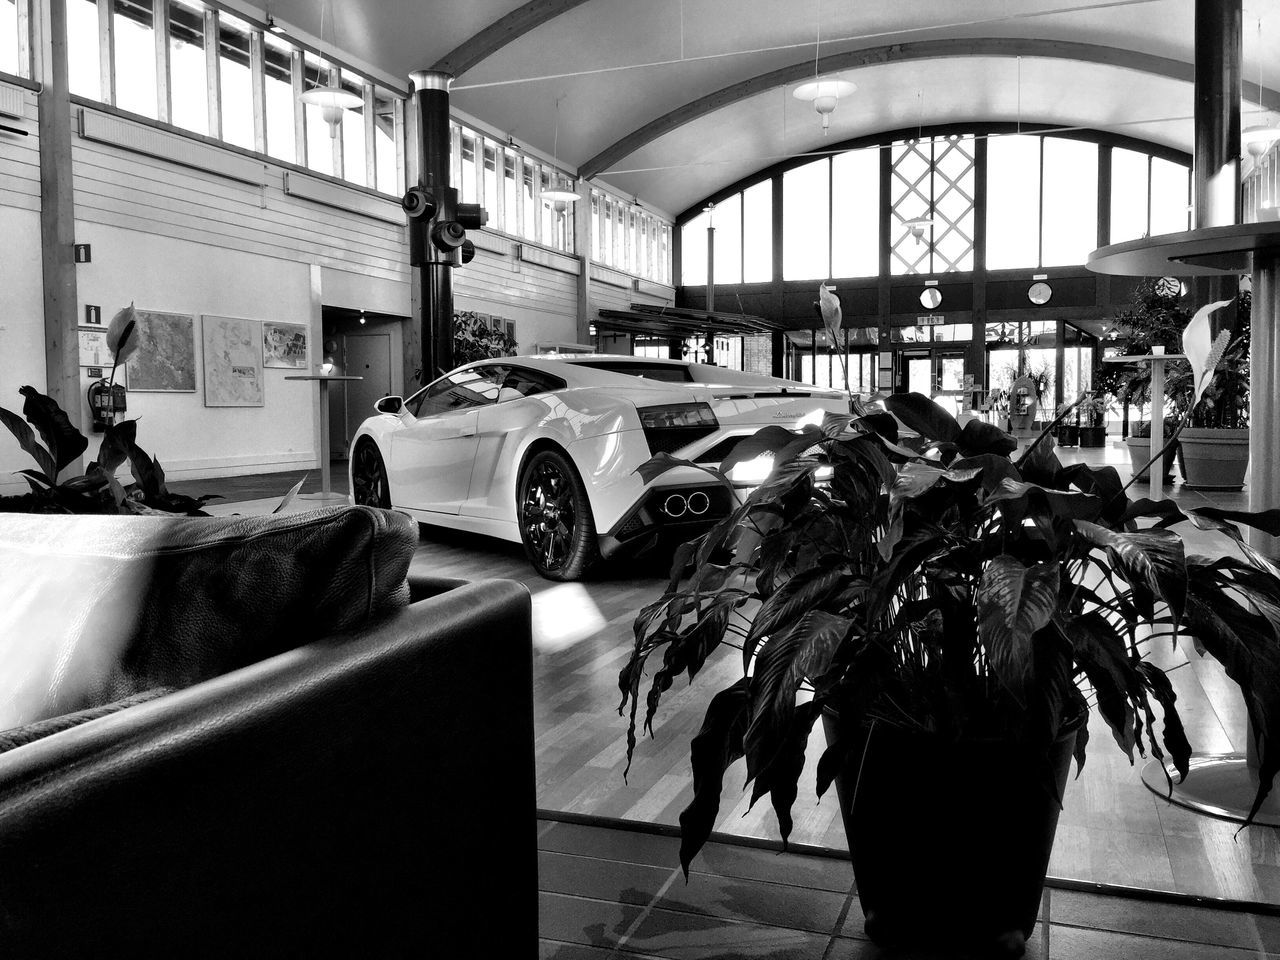 Indoors  Built Structure Architecture City No People Day Blackandwhite Living Room Lamborghini Lambo Car Supercar Black And White Black & White Blackandwhite Photography IPhoneography Photography McIntosh Indoor Photography Good Morning Hello World Mode Of Transport Race Flower Runway